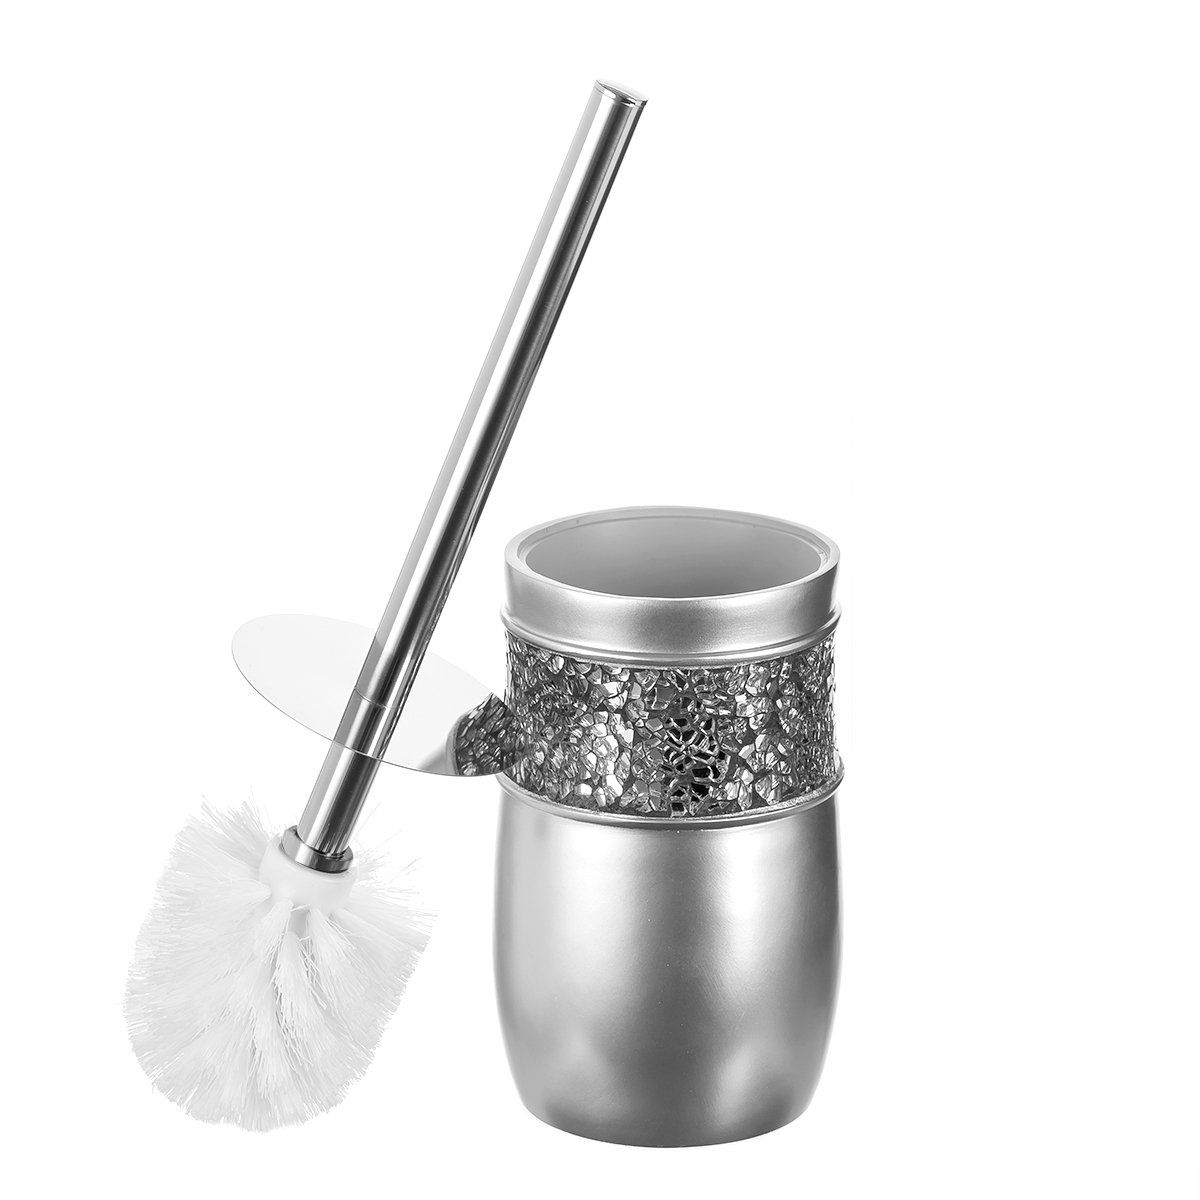 Creative Scents Bathroom Toilet Brush Set Brushed Nickel Collection Good Grip Toilet Bowl Cleaner Bru Toilet Brushes And Holders Toilet Bowl Brush Toilet Bowl